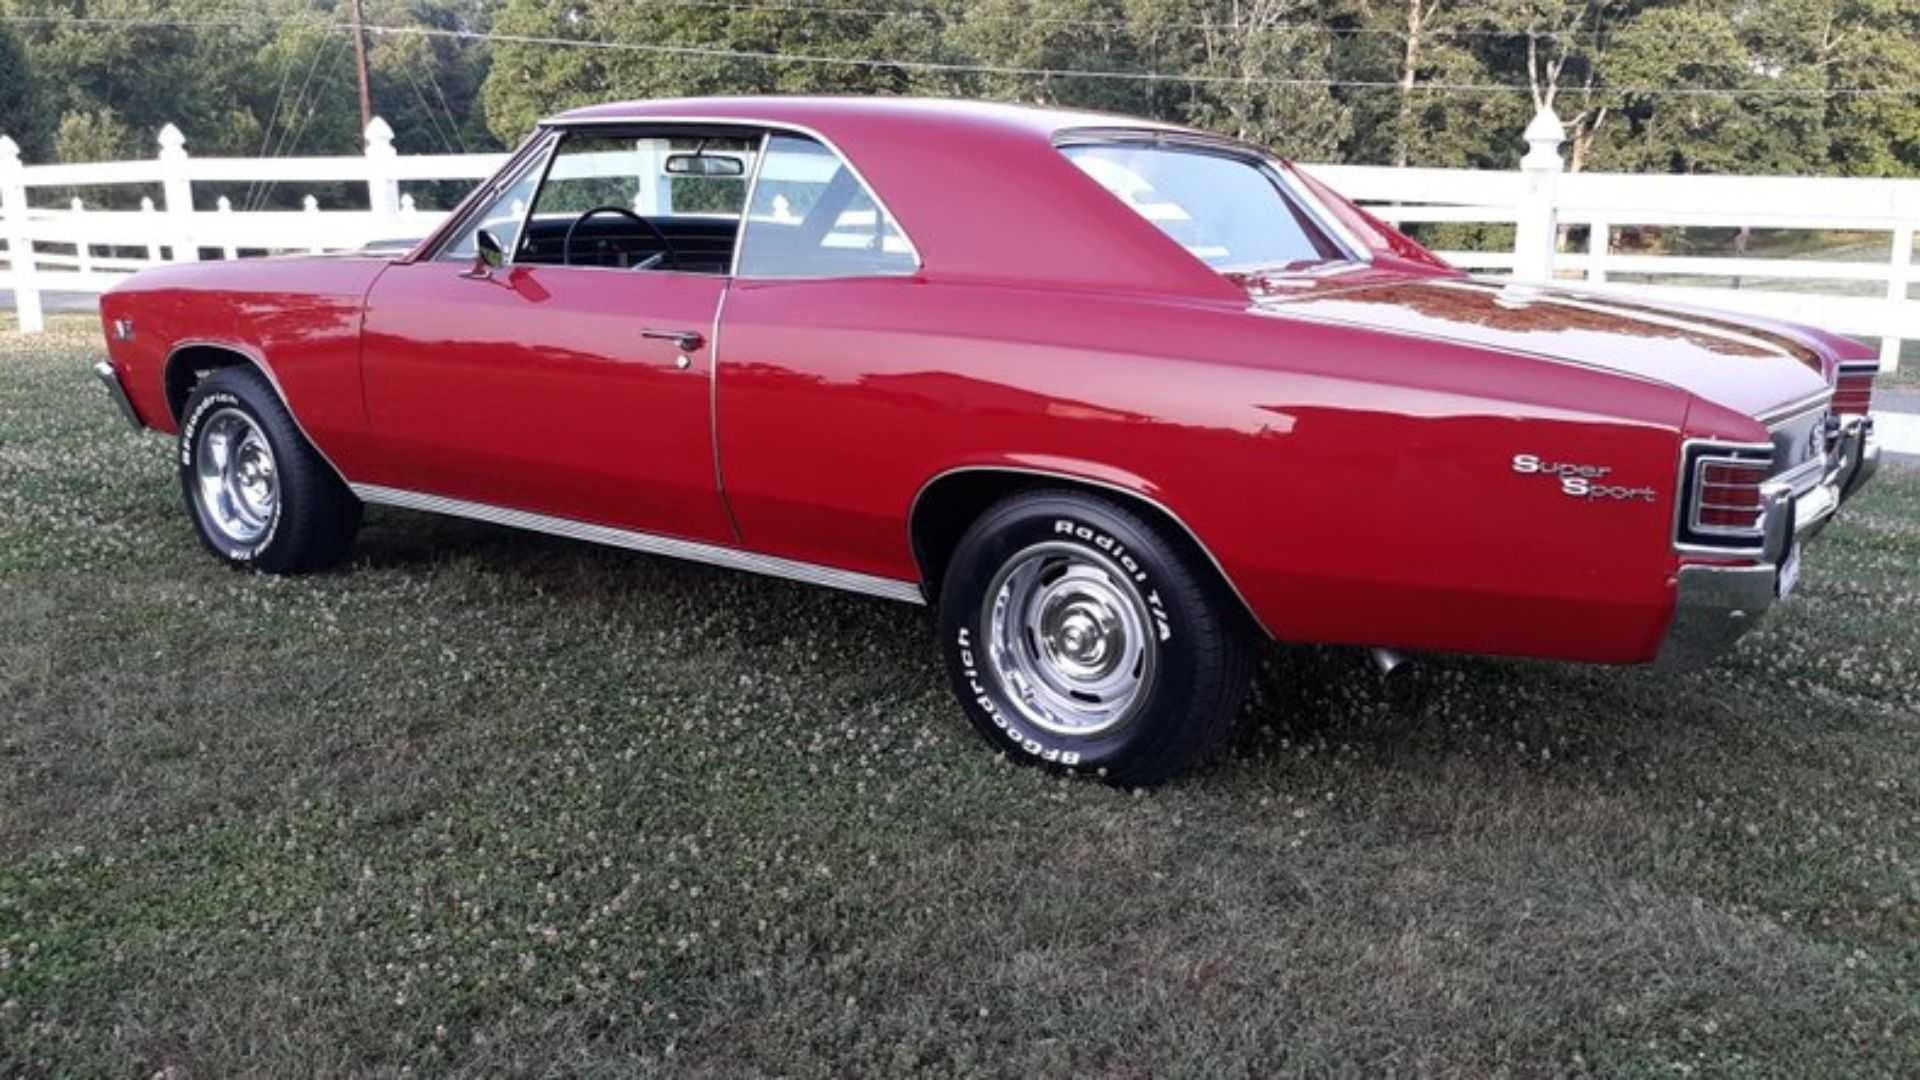 1967 Chevrolet Chevelle SS Is A Red Hot Collectible | Motorious